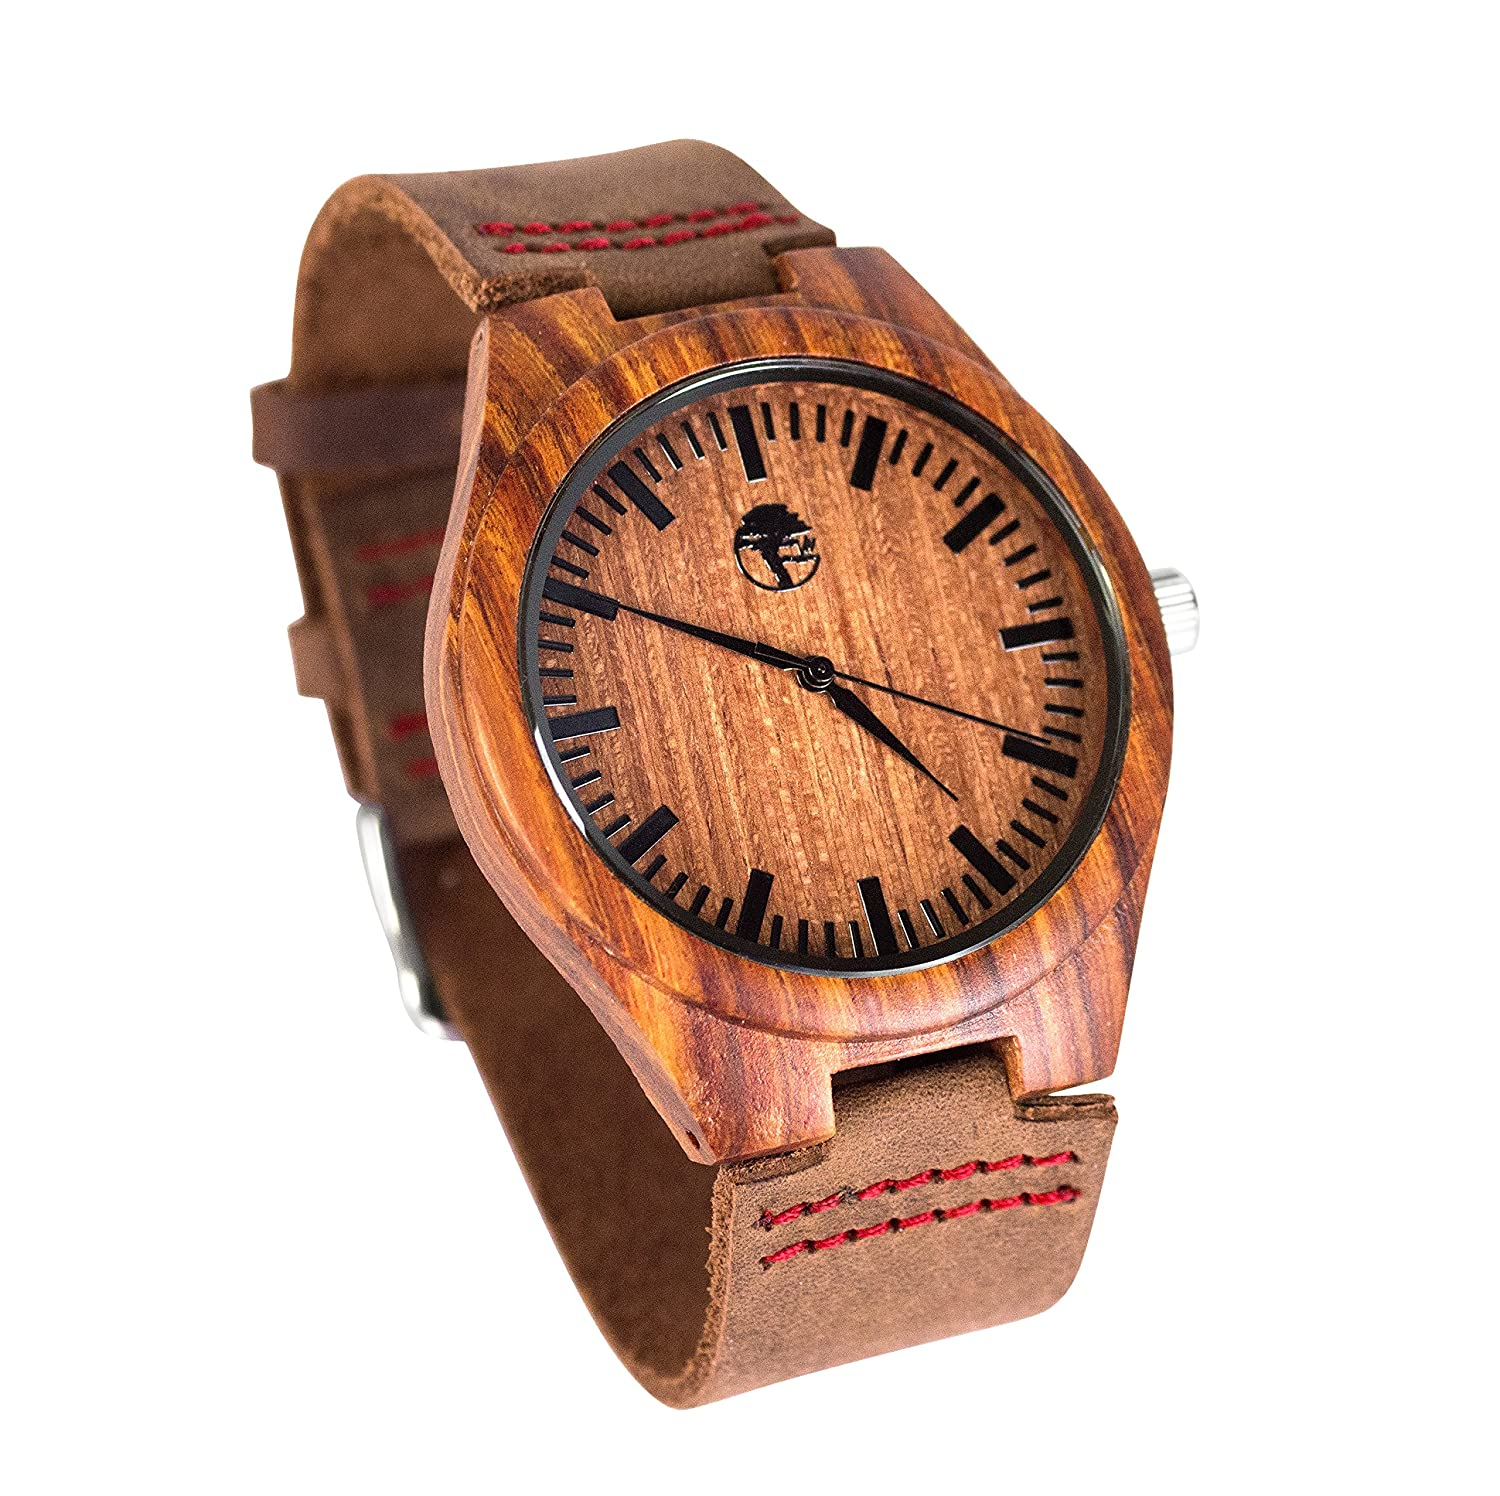 ae cowhide new vosicar genuine watches ideashop with movement com wooden watch casual wood bamboo japan creative true amazon quartz fashion retro leather dp band